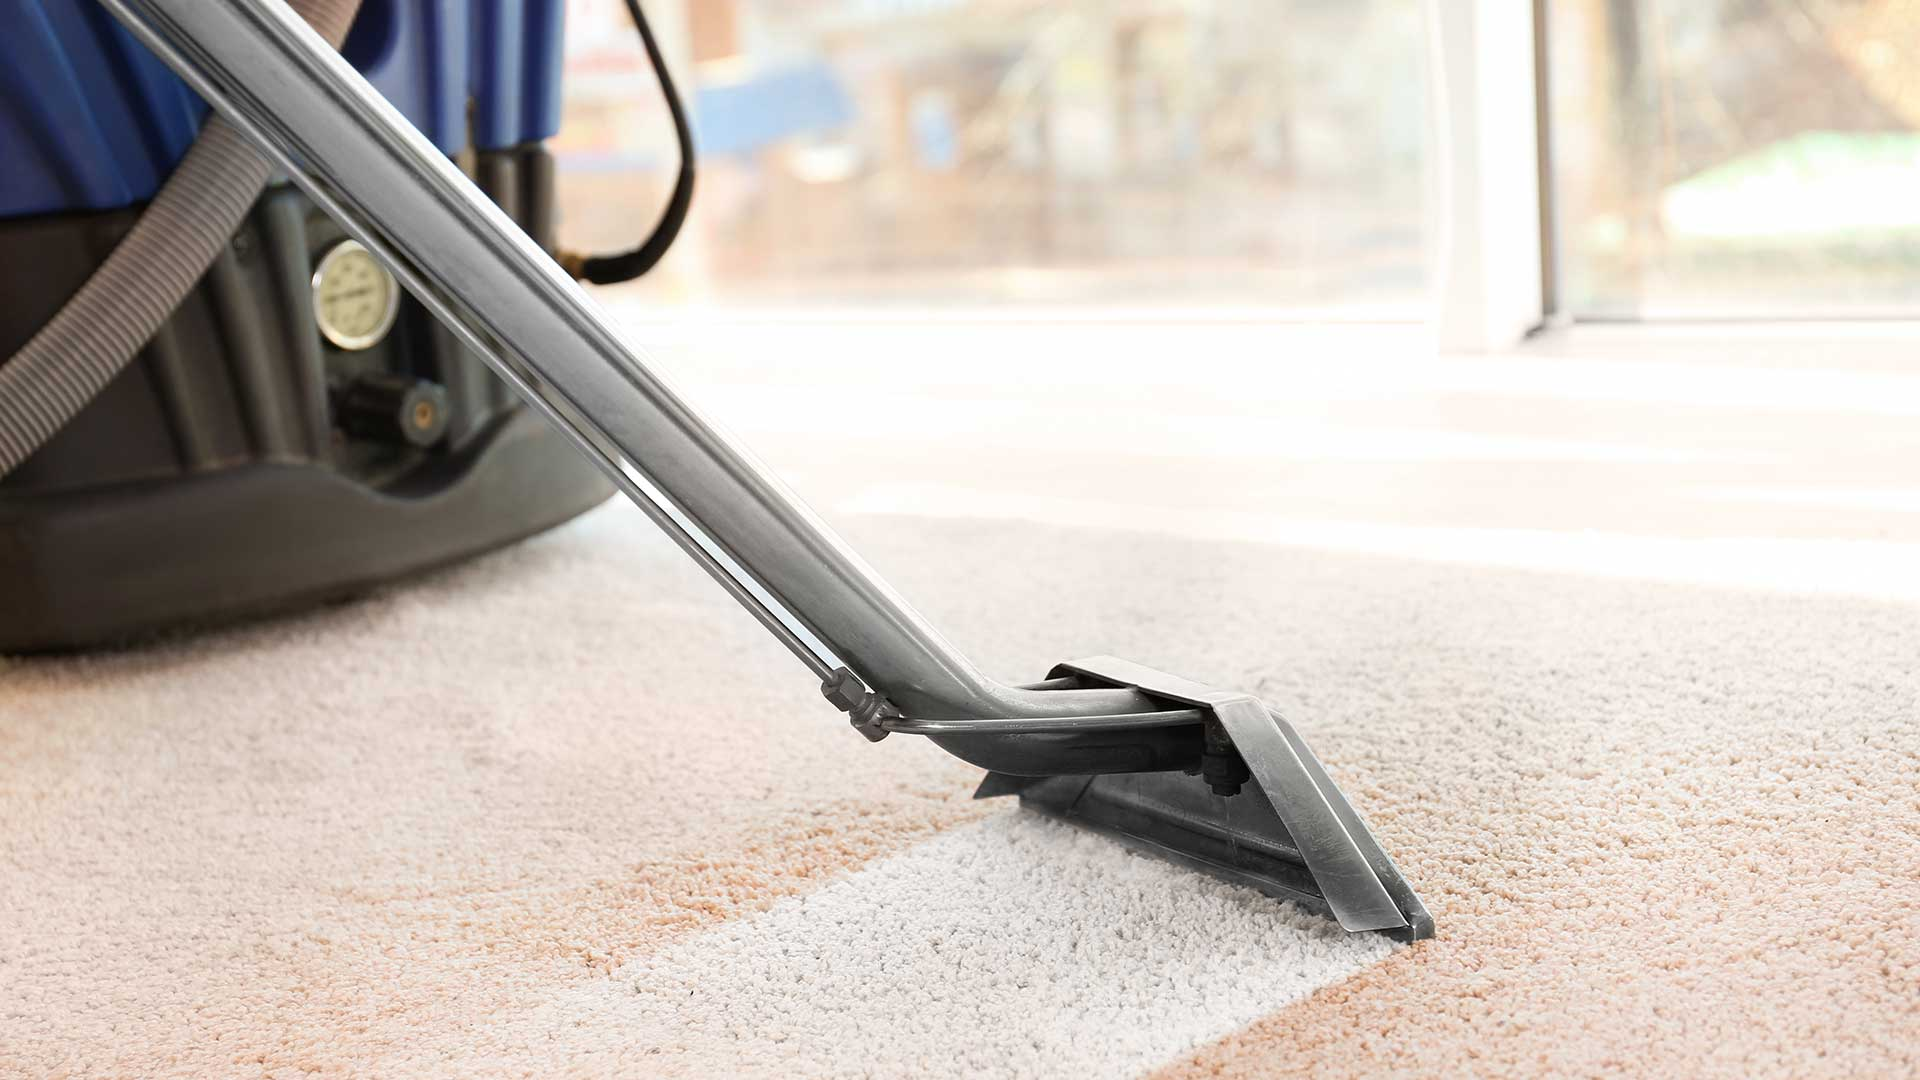 Home Carpet Cleaning Carpet Cleaning Janitorial Services Lutz Wesley Chapel